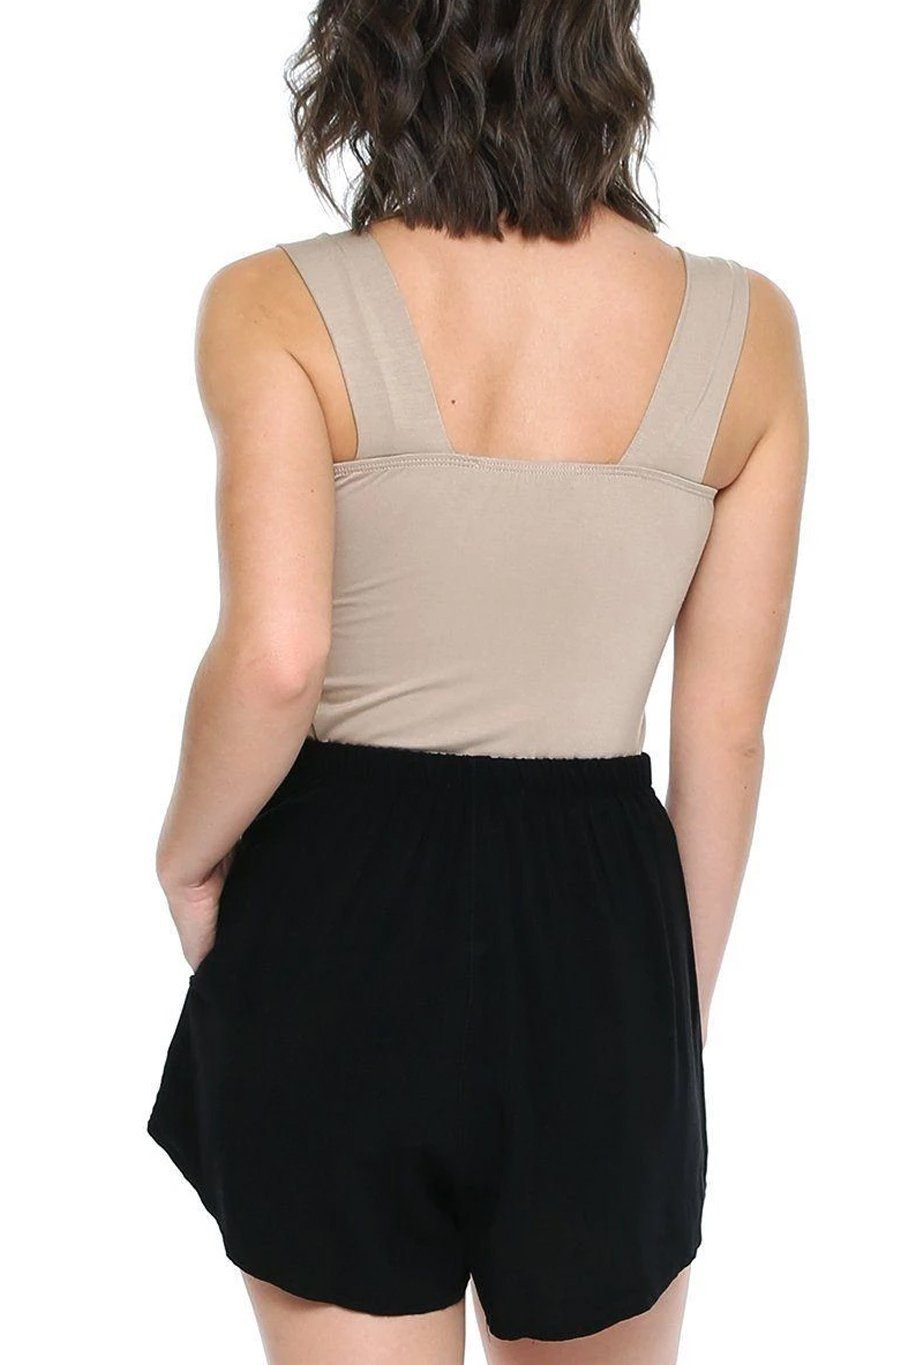 Thick Strap Tank - Sand